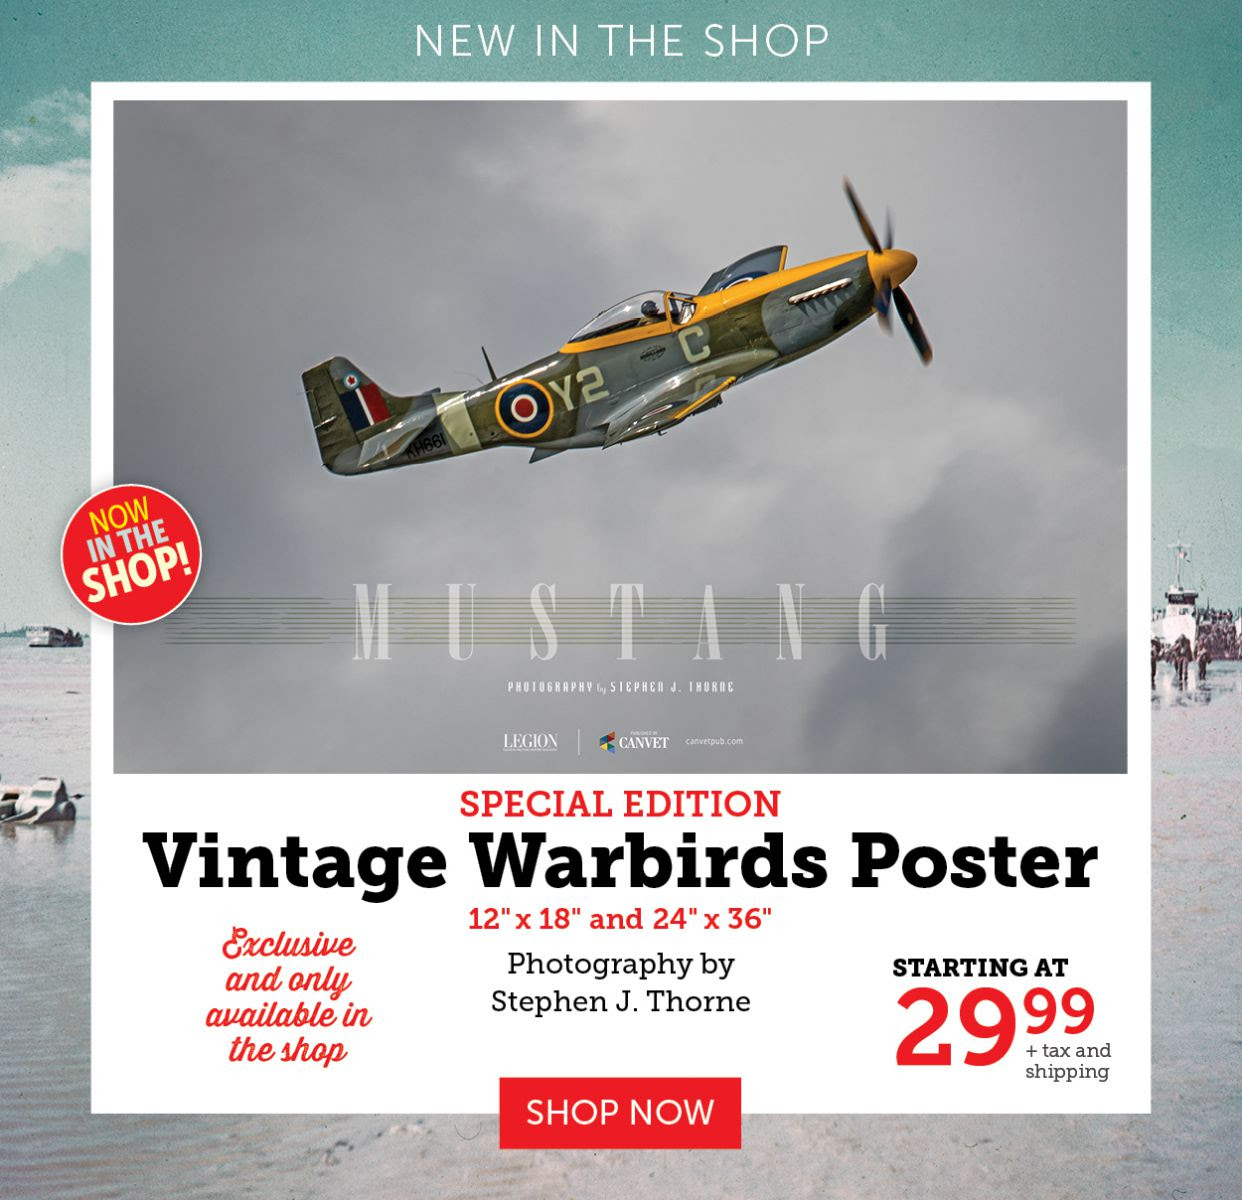 NEW Vintage Warbirds Poster - Mustang